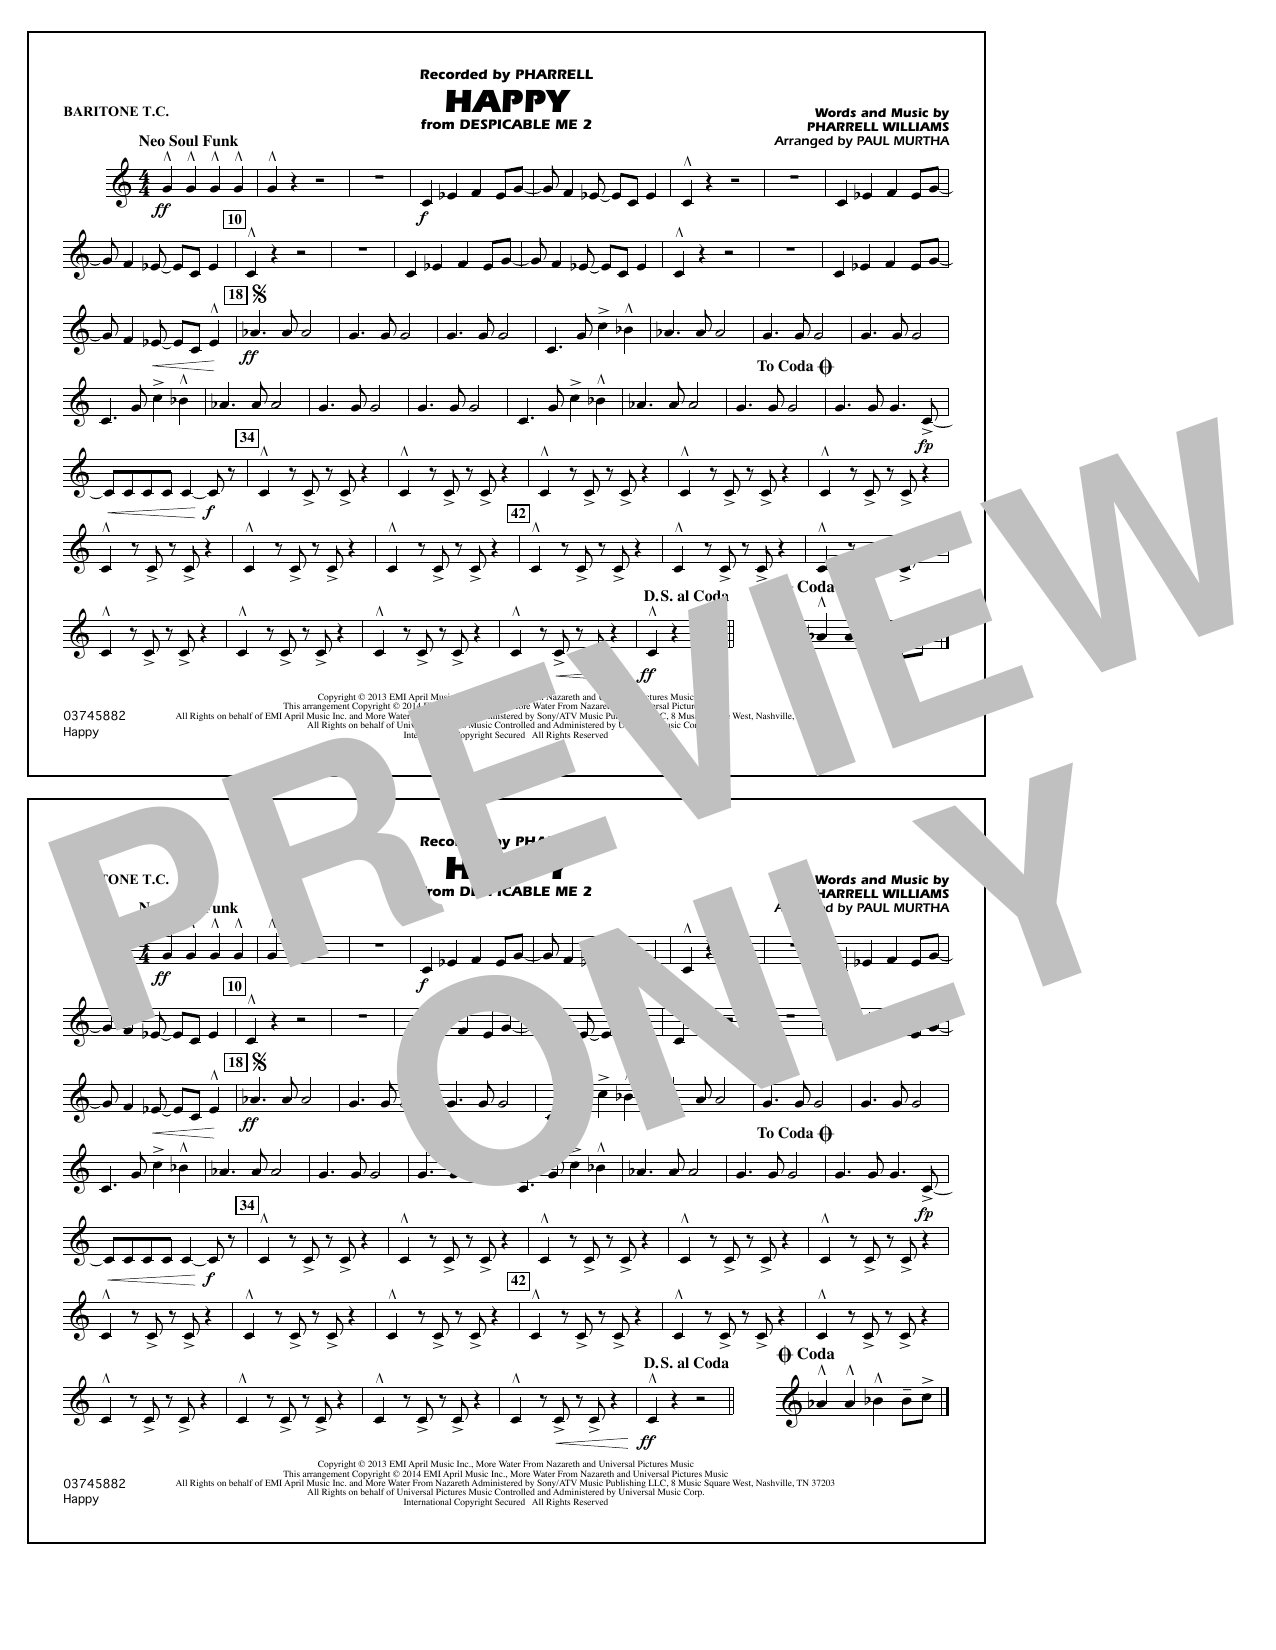 Happy (from Despicable Me 2) - Baritone T.C. (Marching Band)